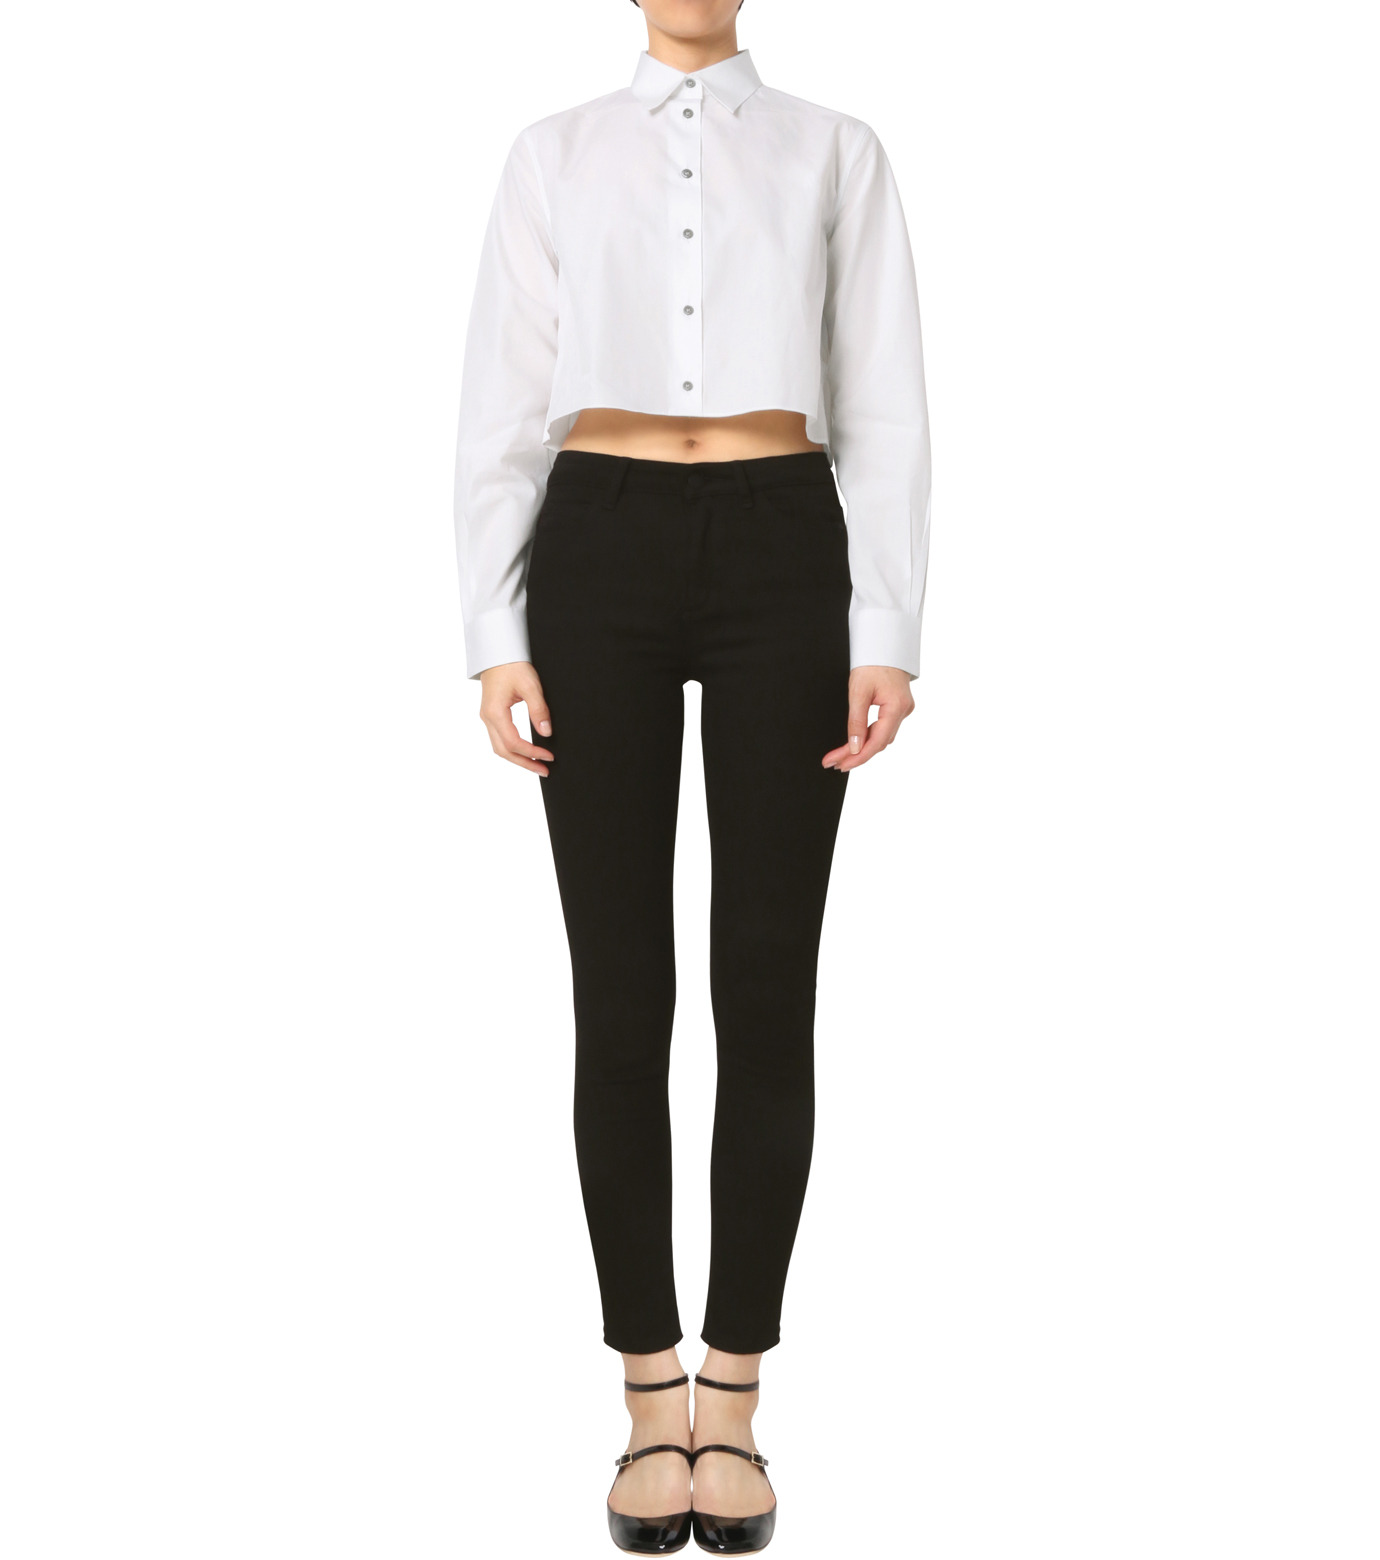 Jourden(ジョーダン)のWhite Cropped Shirt-WHITE(シャツ/shirt)-1603WC3TH01-4 拡大詳細画像3